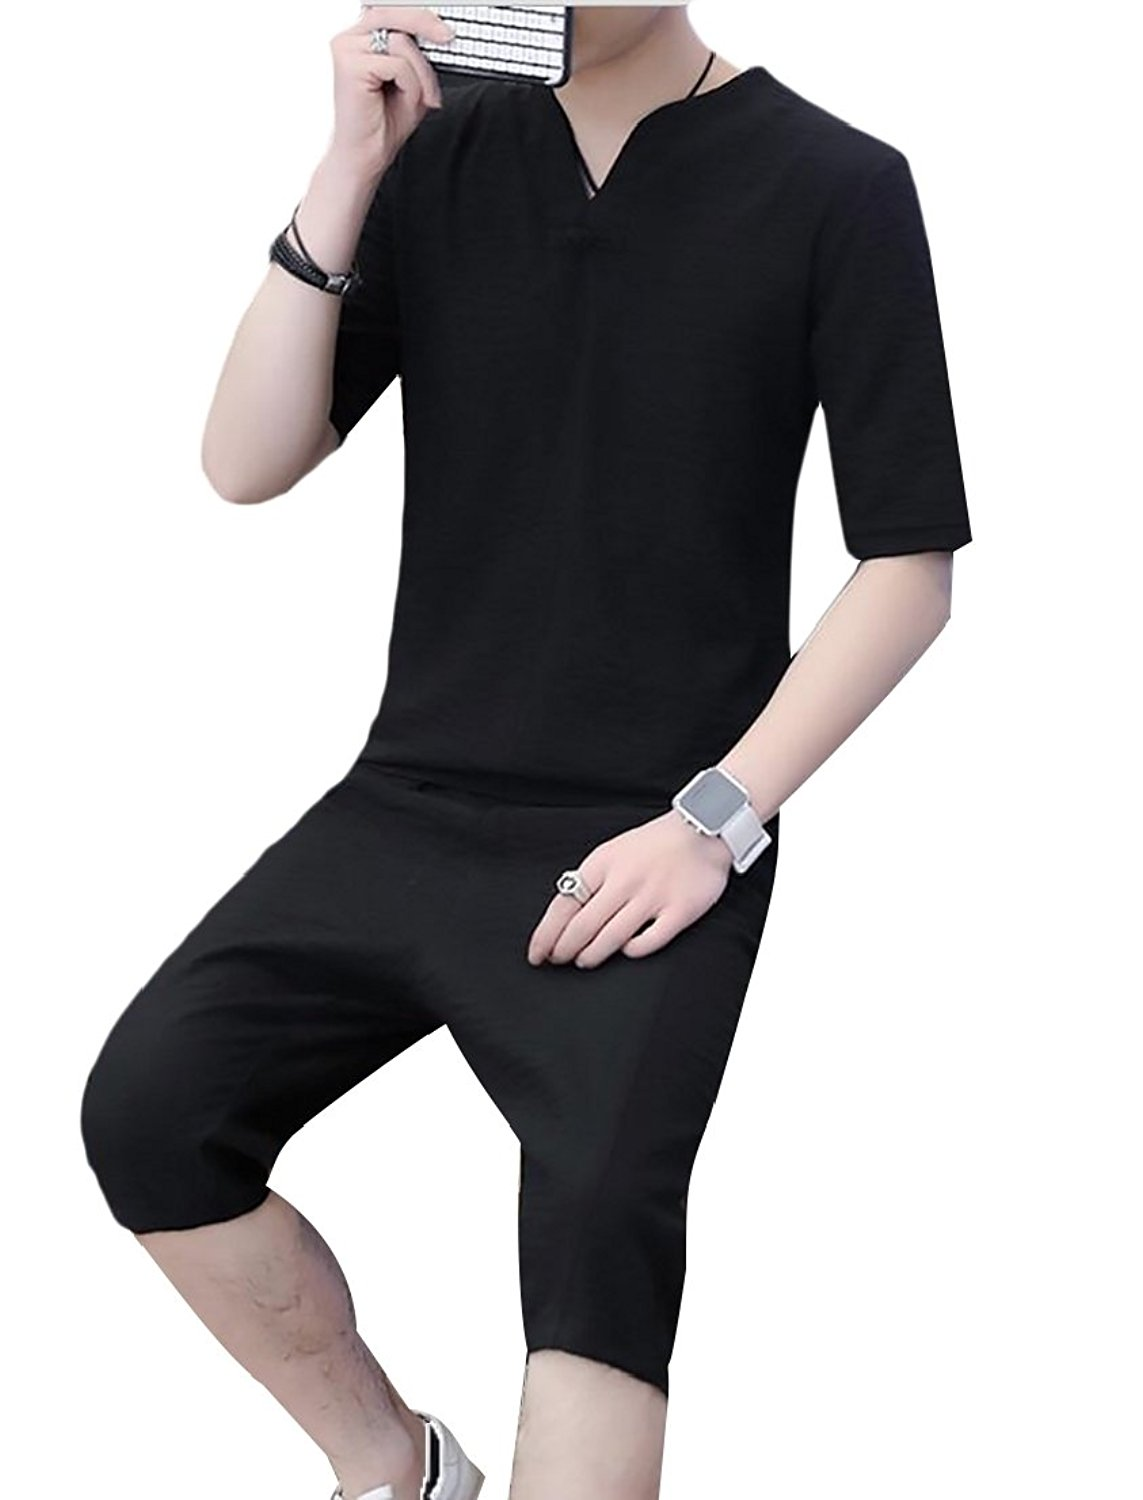 45faef335 Generic Mens Leisure Short Sleeve Chinese Style Tops Shorts Cotton Linen  2PC Set Tracksuit